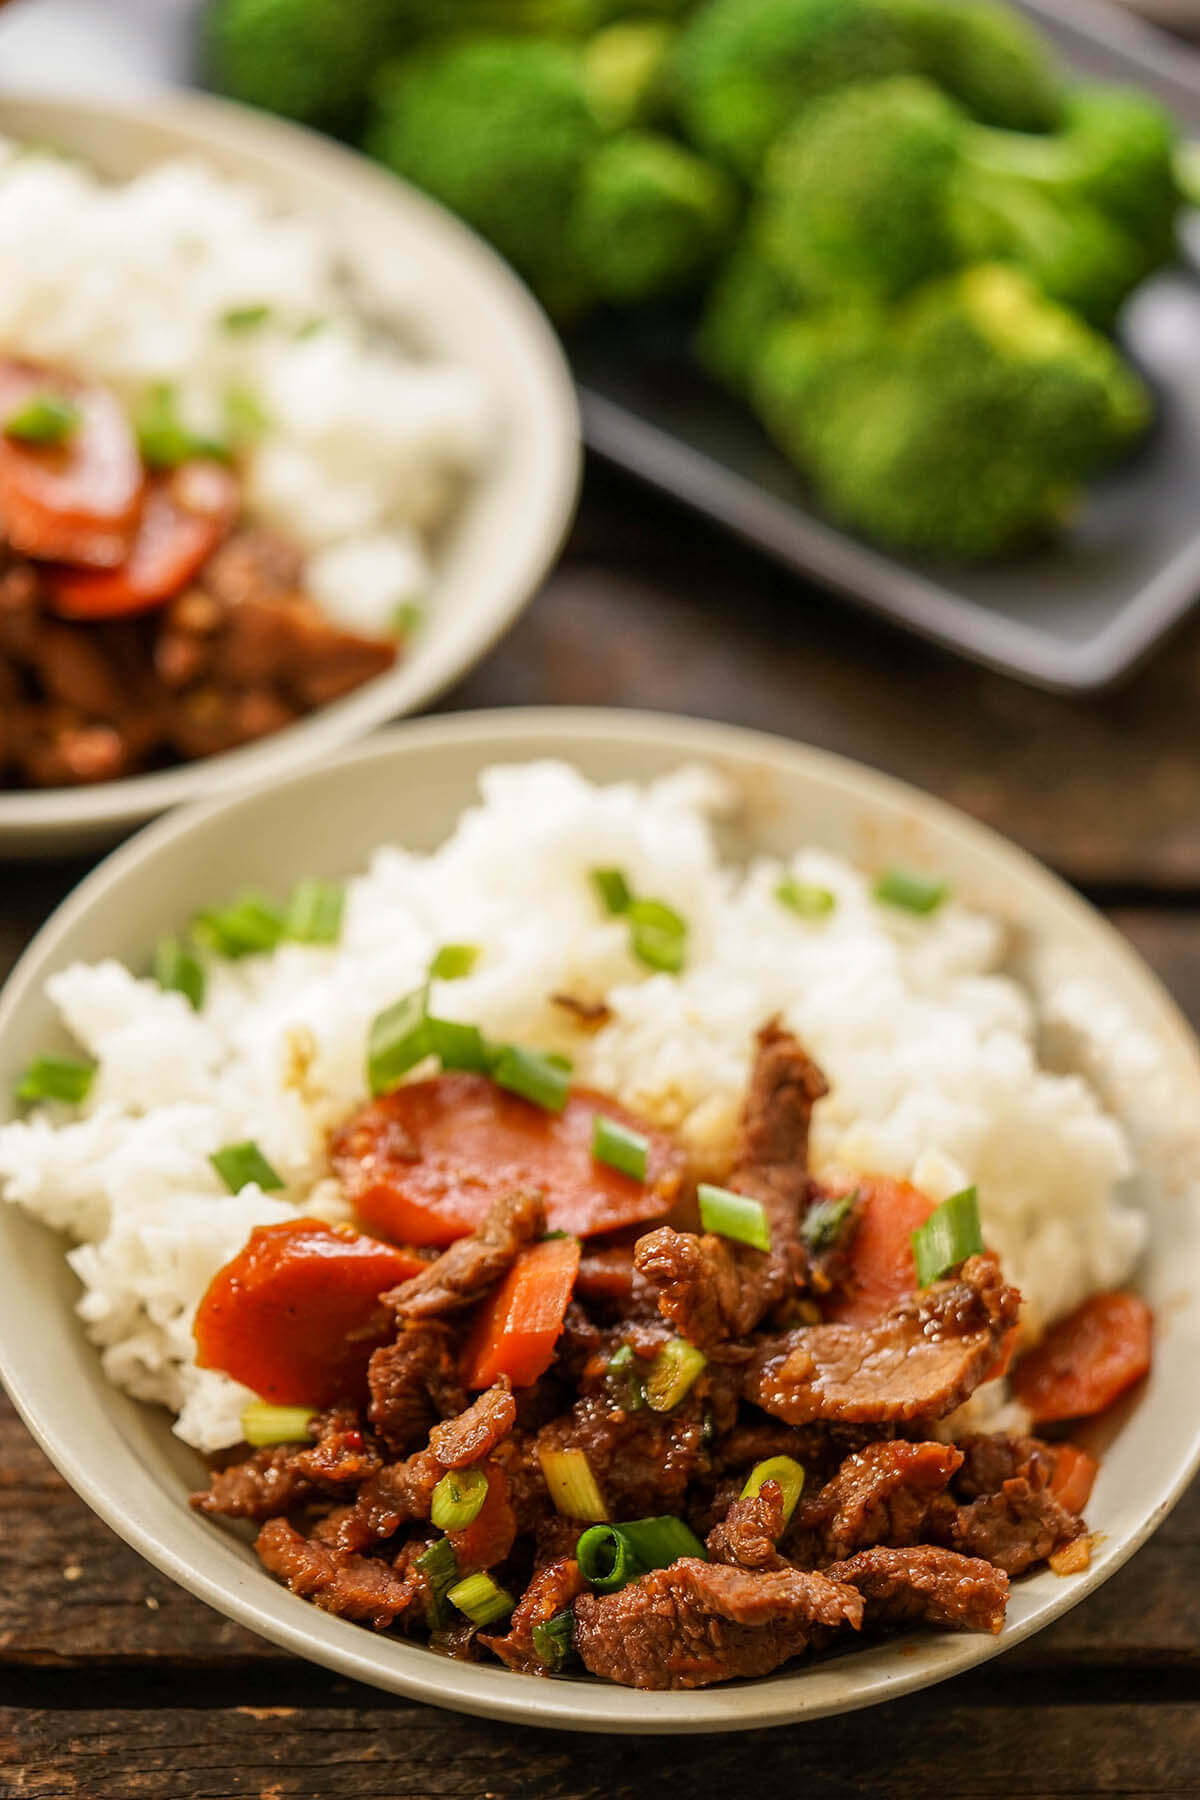 Mongolian Beef in gray bowl served with white rice and broccoli.